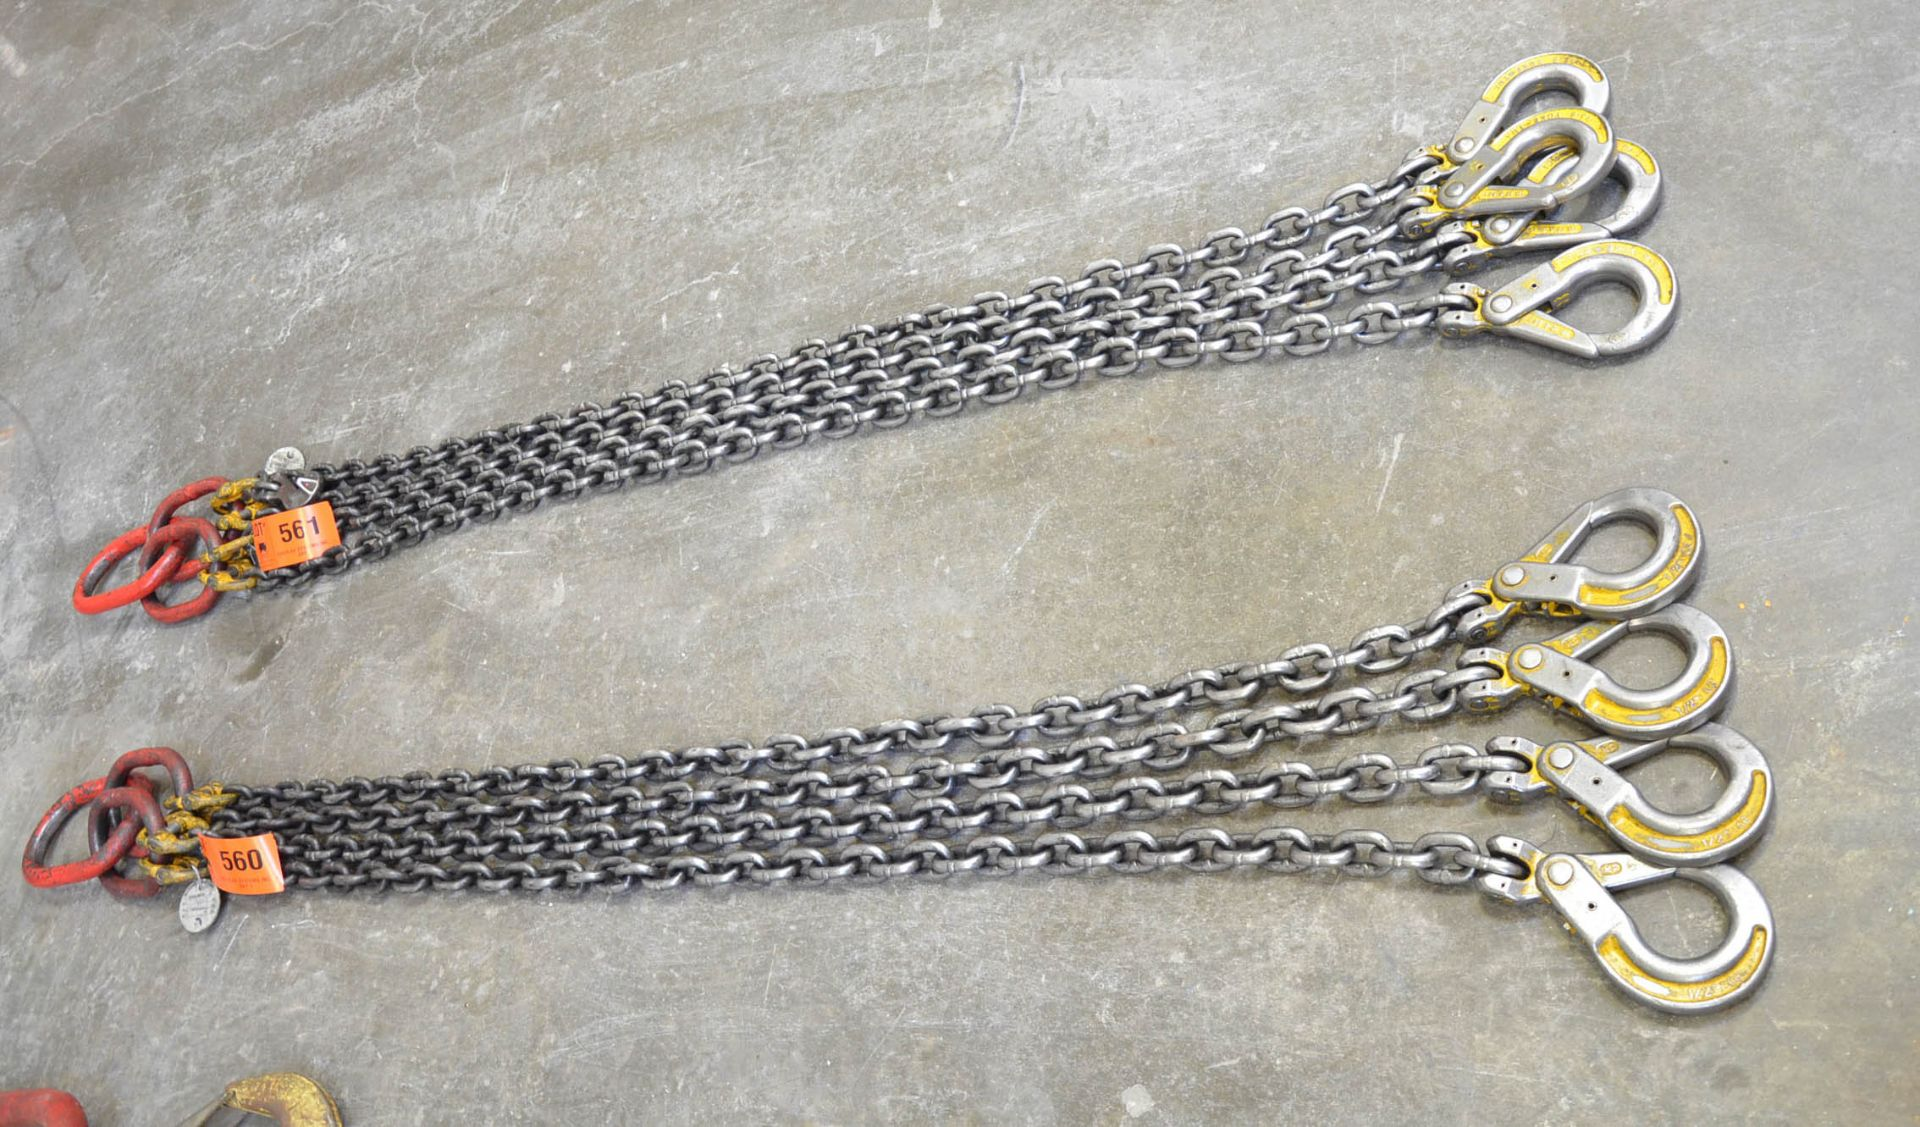 """SPARTAN 1/2"""" X 8' 4-PART LIFTING CHAIN WITH 31,000 LBS CAPACITY"""